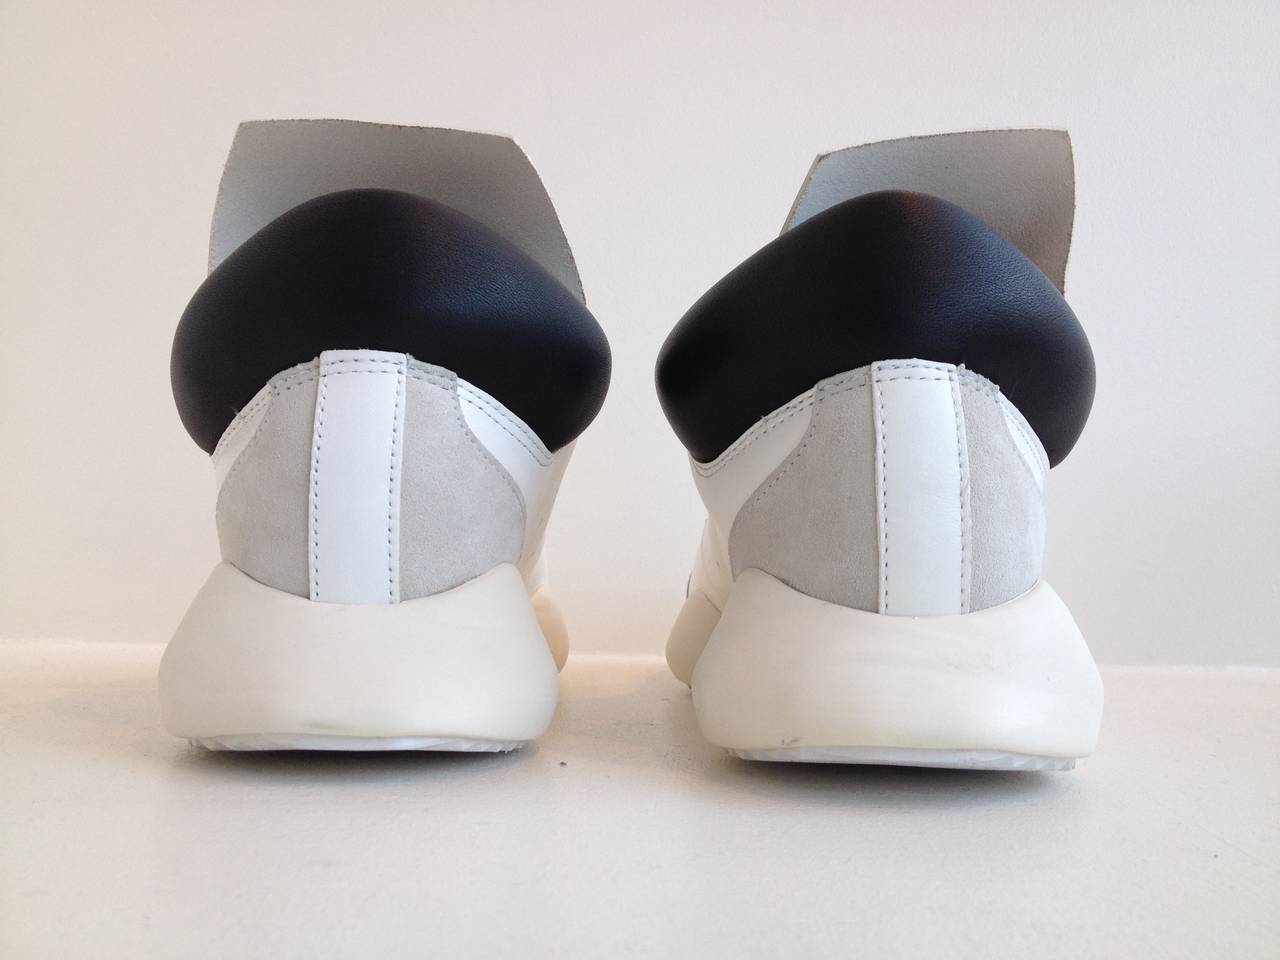 Rick Owens for Adidas White Puffy Sneakers 6